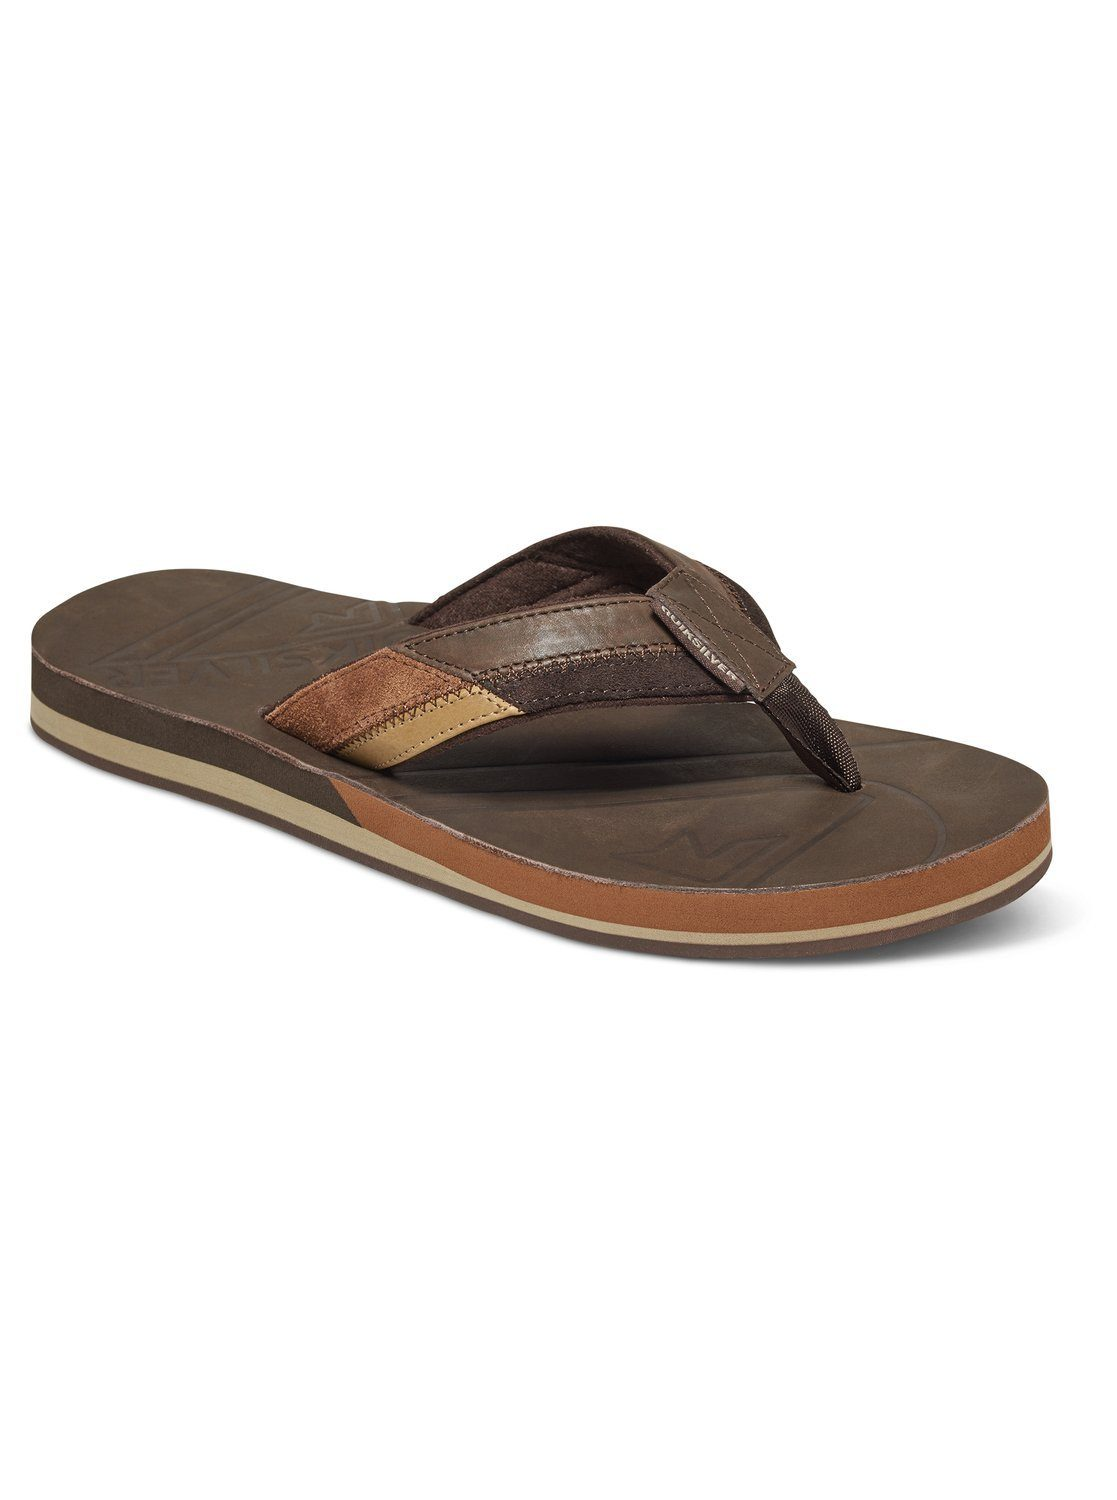 Quiksilver Sandalen Hiatus online kaufen  Brown#ft5_slash#black#ft5_slash#brown